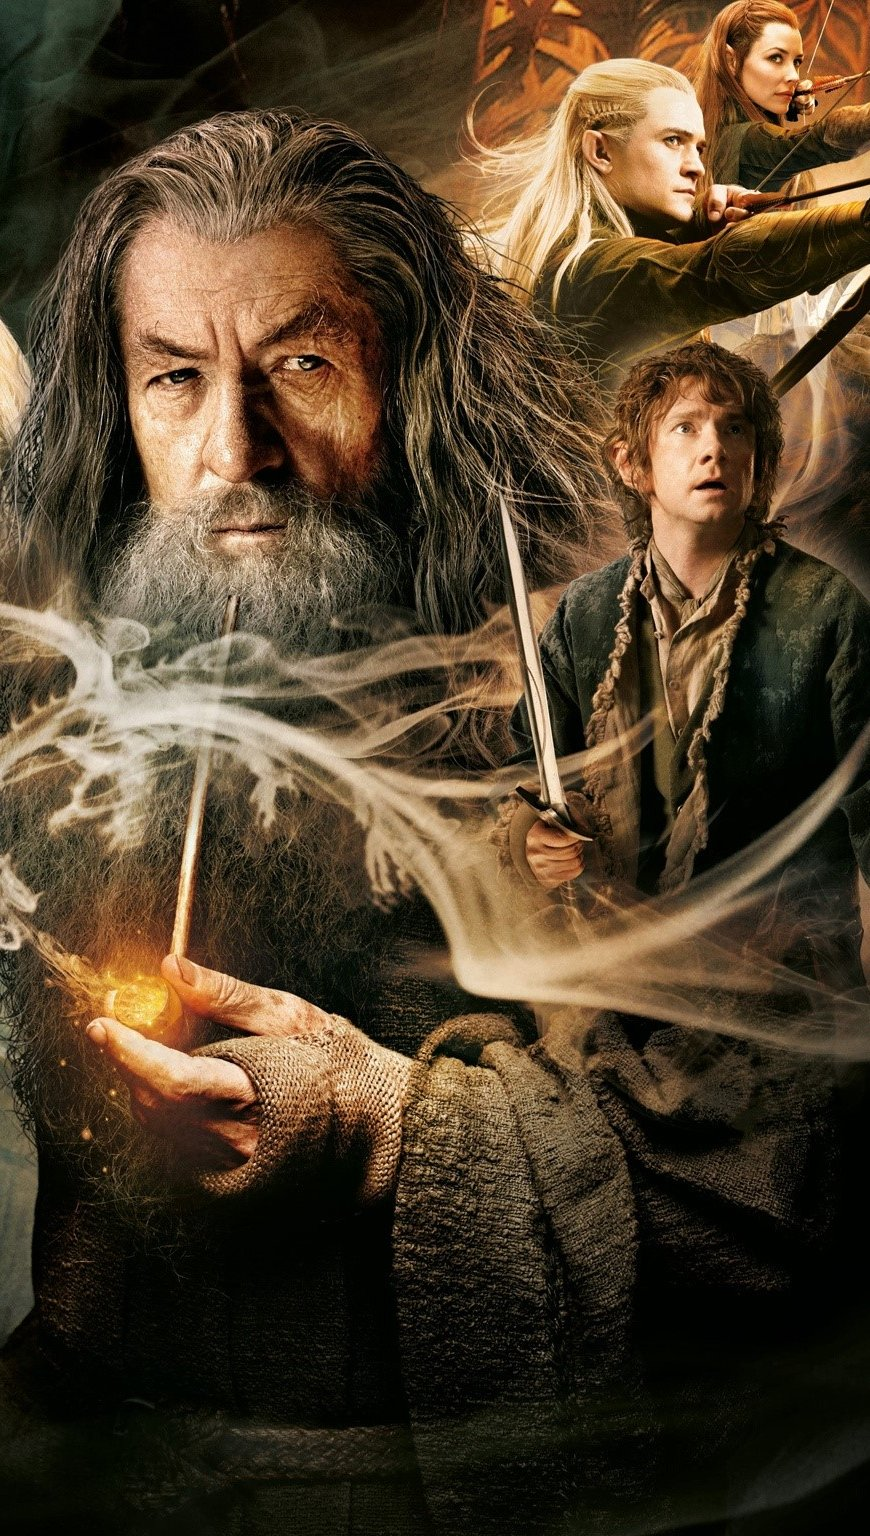 Wallpaper The hobbit 2 Vertical